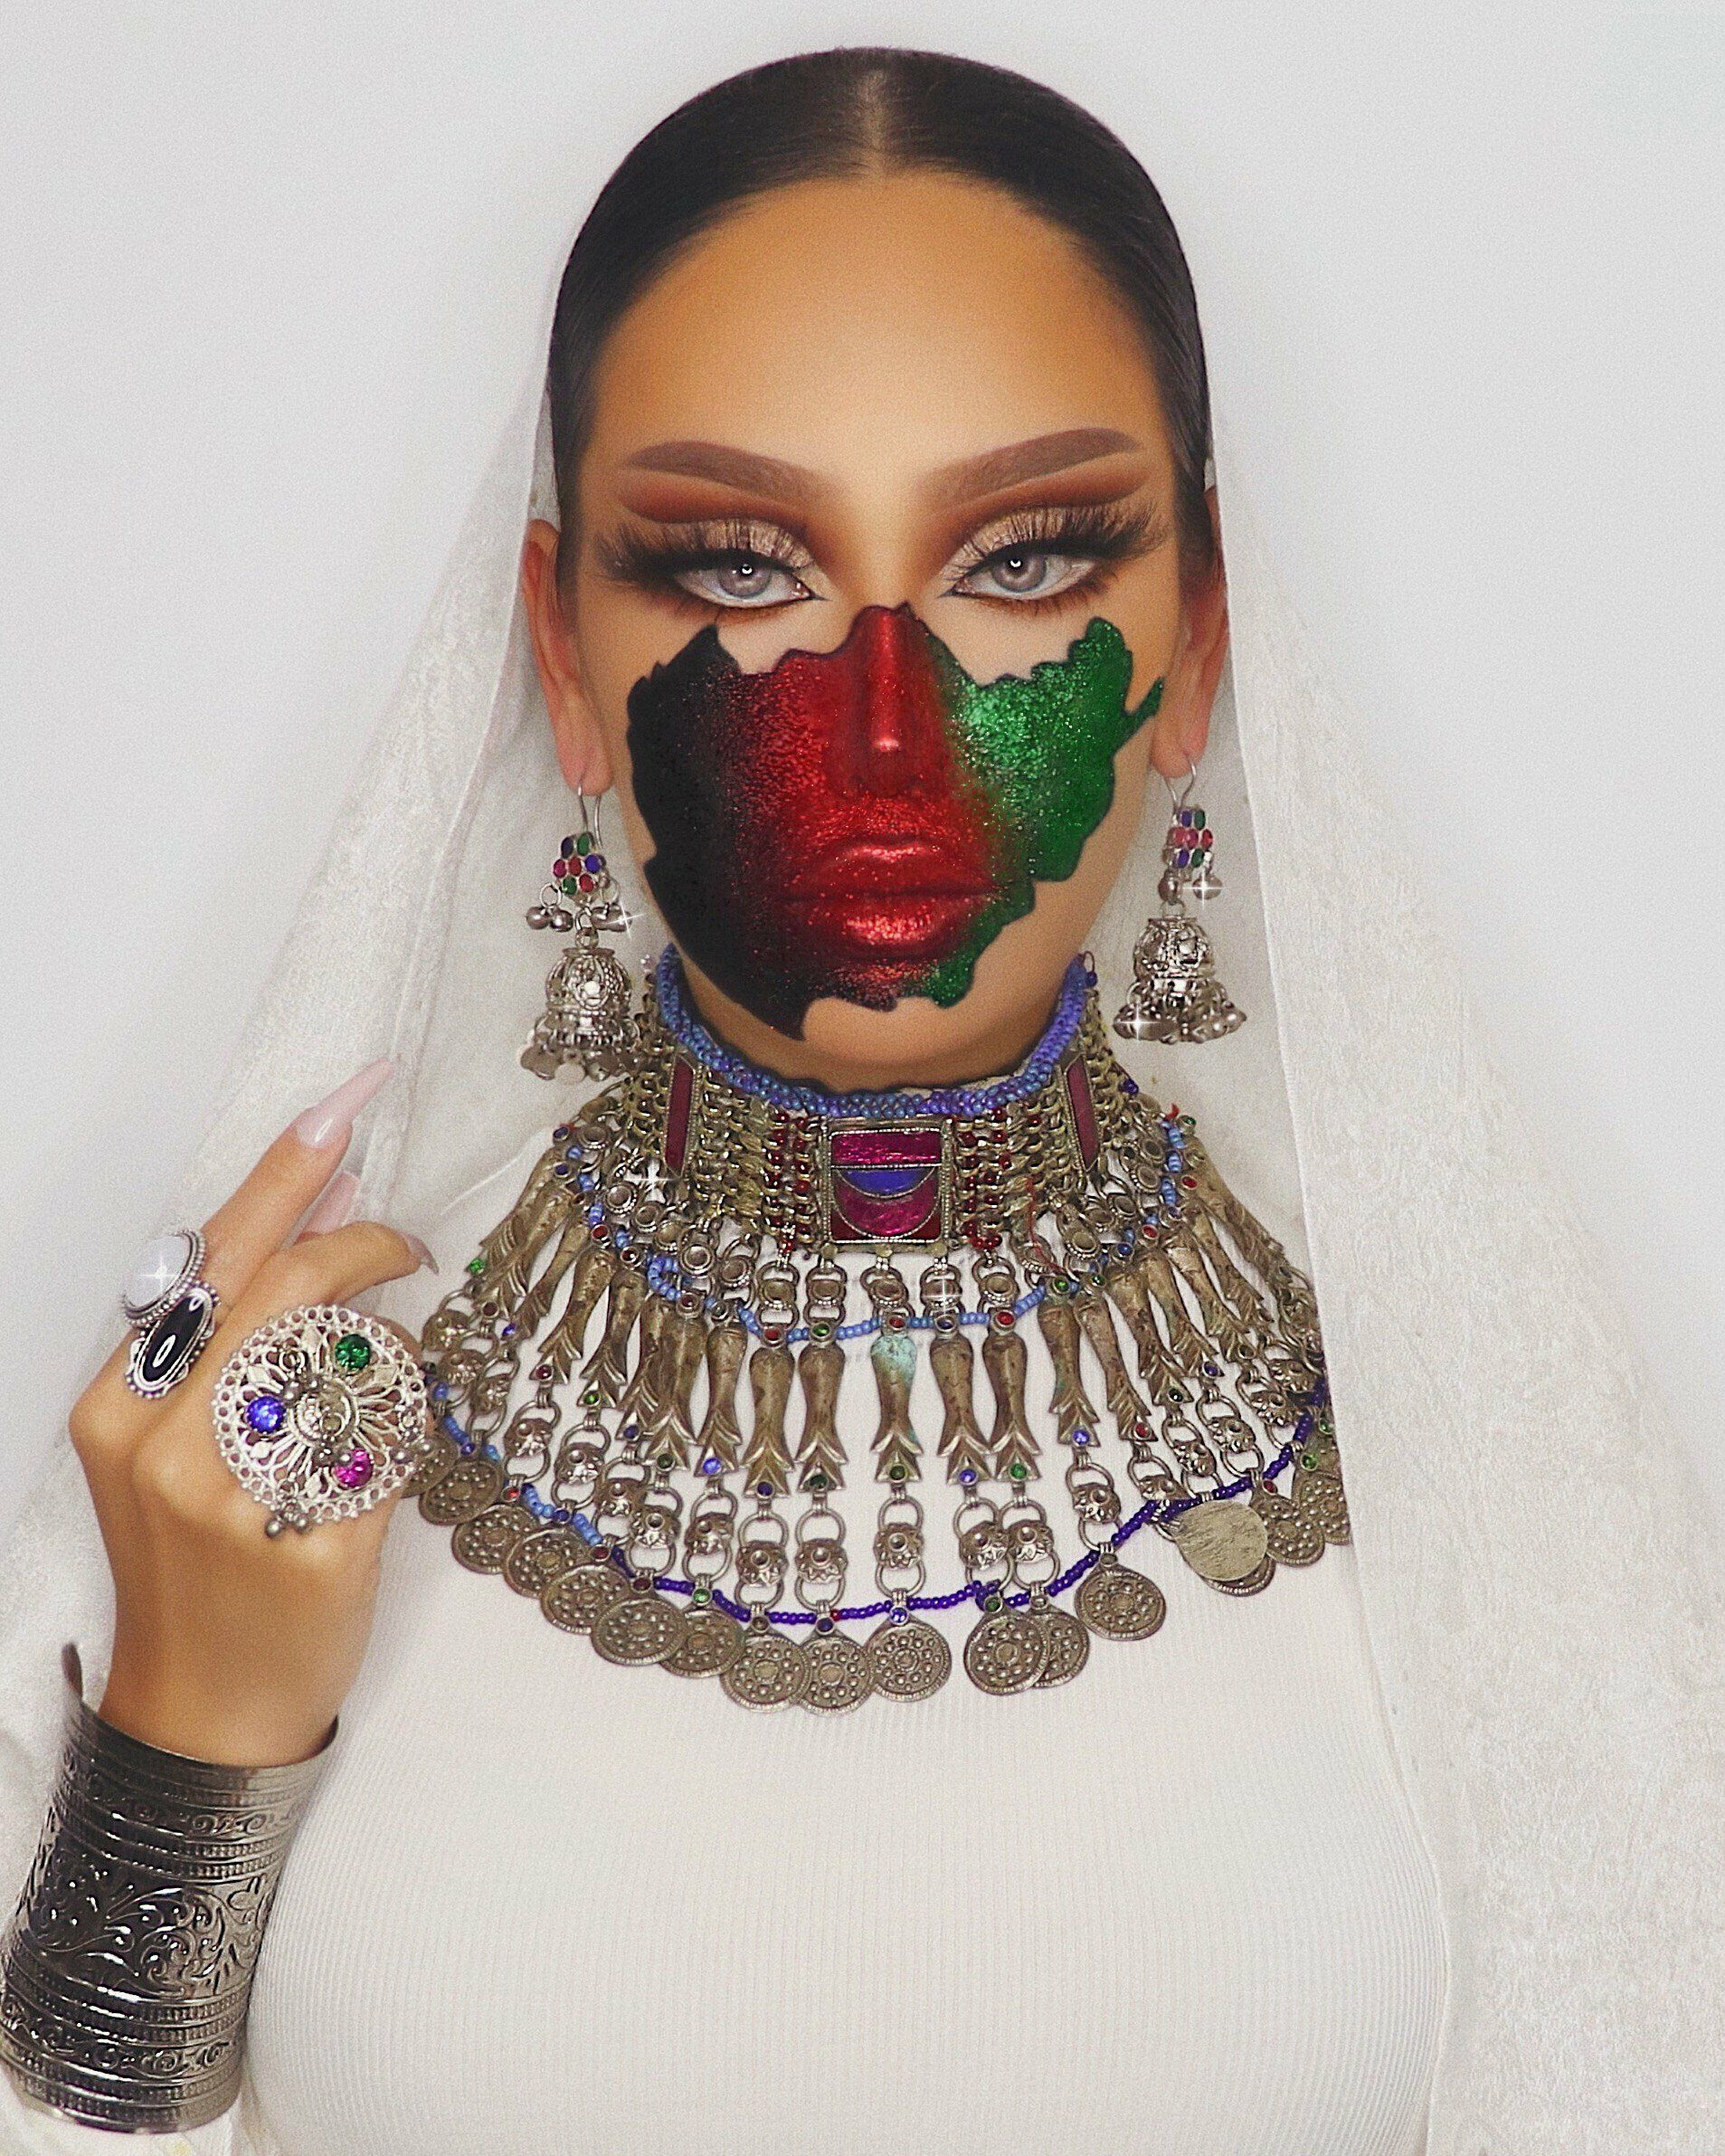 An Afghan female model with make-up of the Afghanistan flag painted on her face